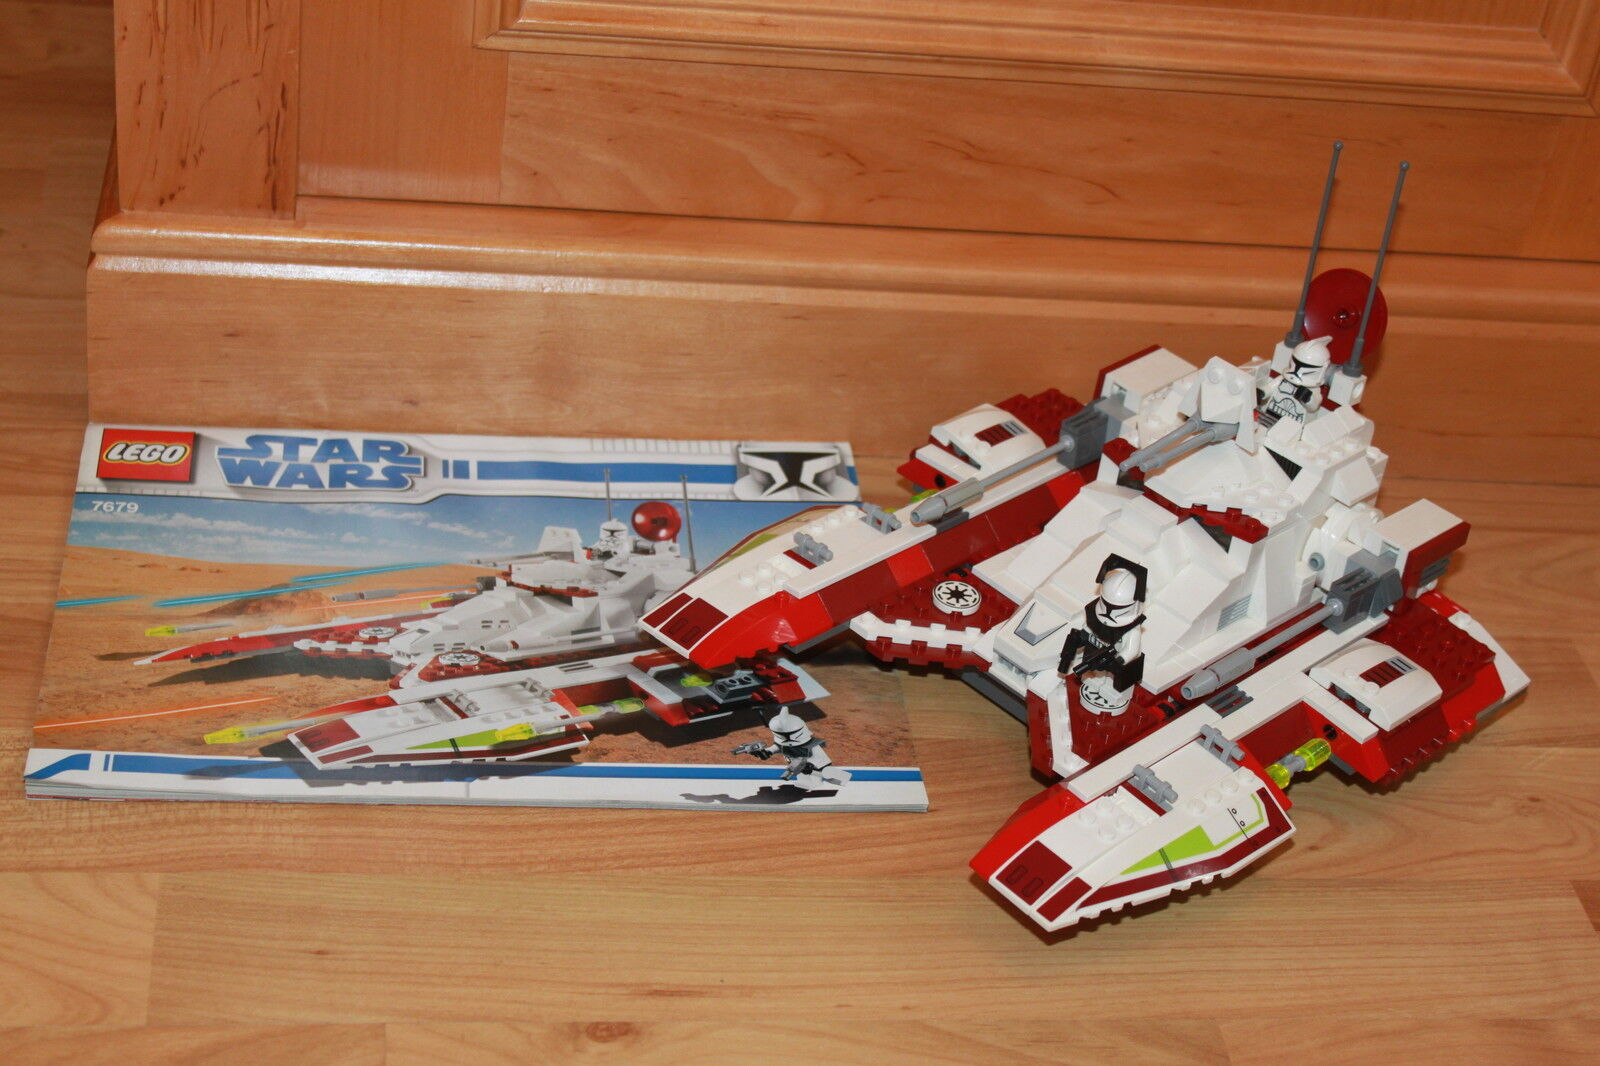 Lego Star Wars - 7679 Republic Fighter Tank komplett mit Figuren & Bauanleitung